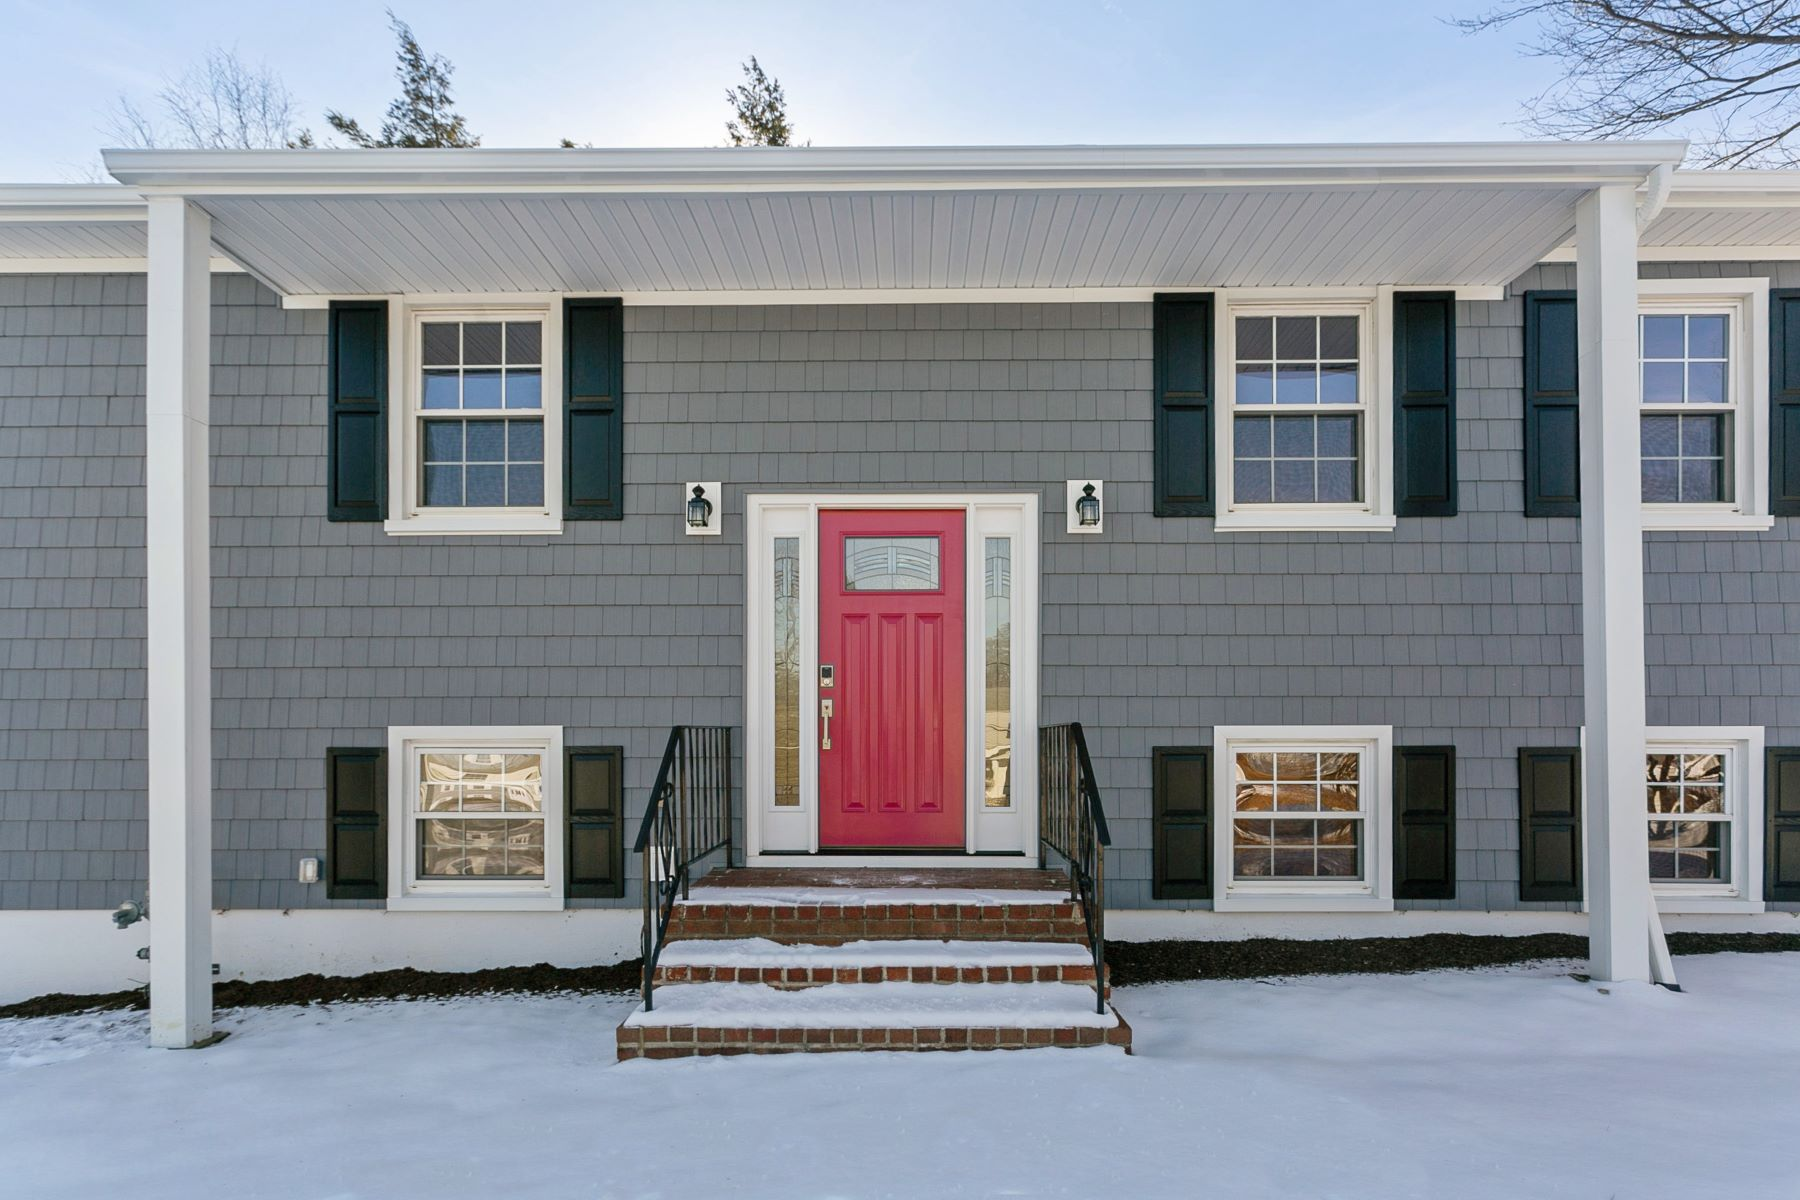 Single Family Homes for Sale at 417 London Road 417 London Rd Yorktown Heights, New York 10598 United States